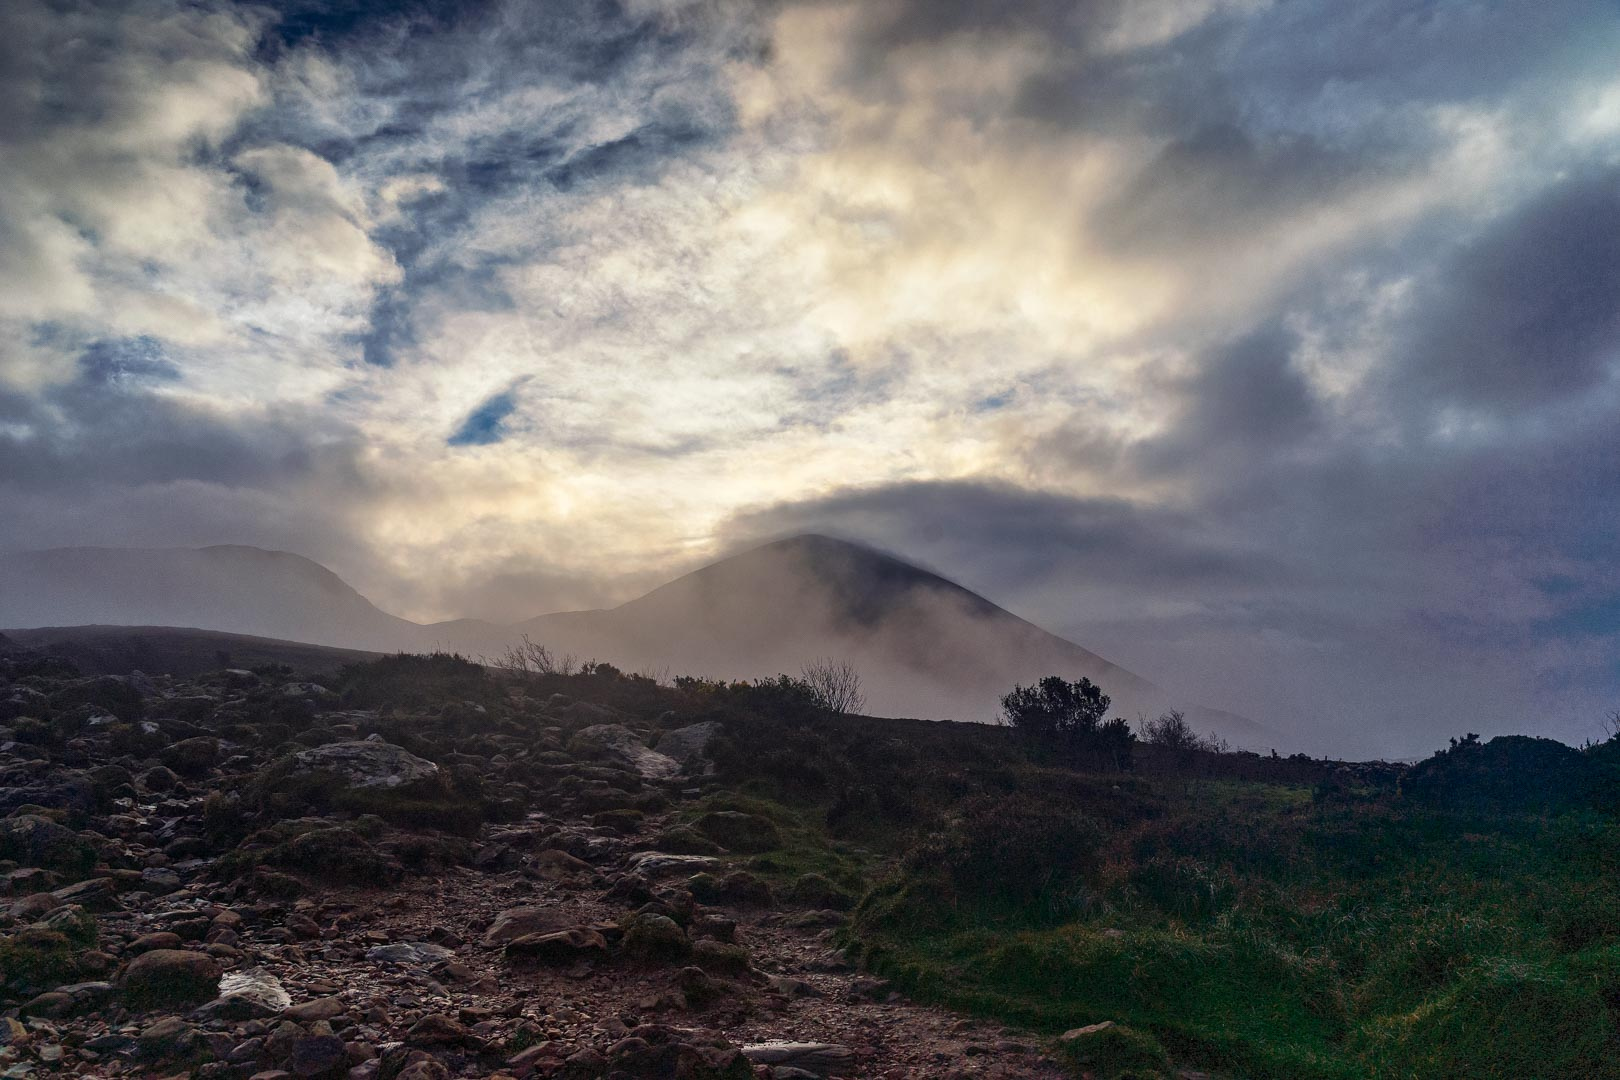 croagh patrick covered in clouds